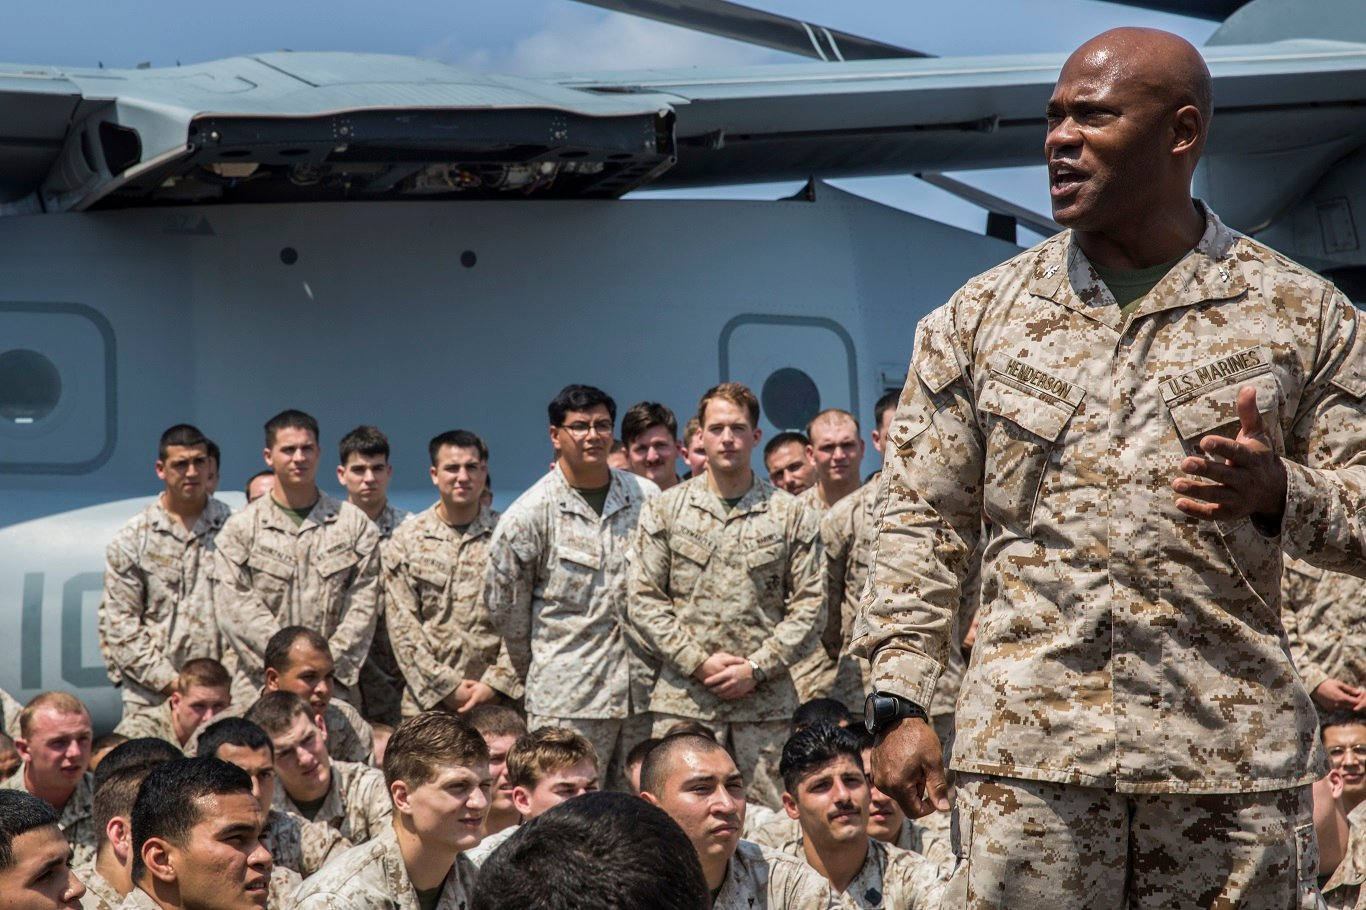 Col. Anthony M. Henderson, commanding officer of the 13th Marine Expeditionary Unit, addresses the Marines and Sailors aboard the USS New Orleans on April, 4 2016. US Marine Corps Photo